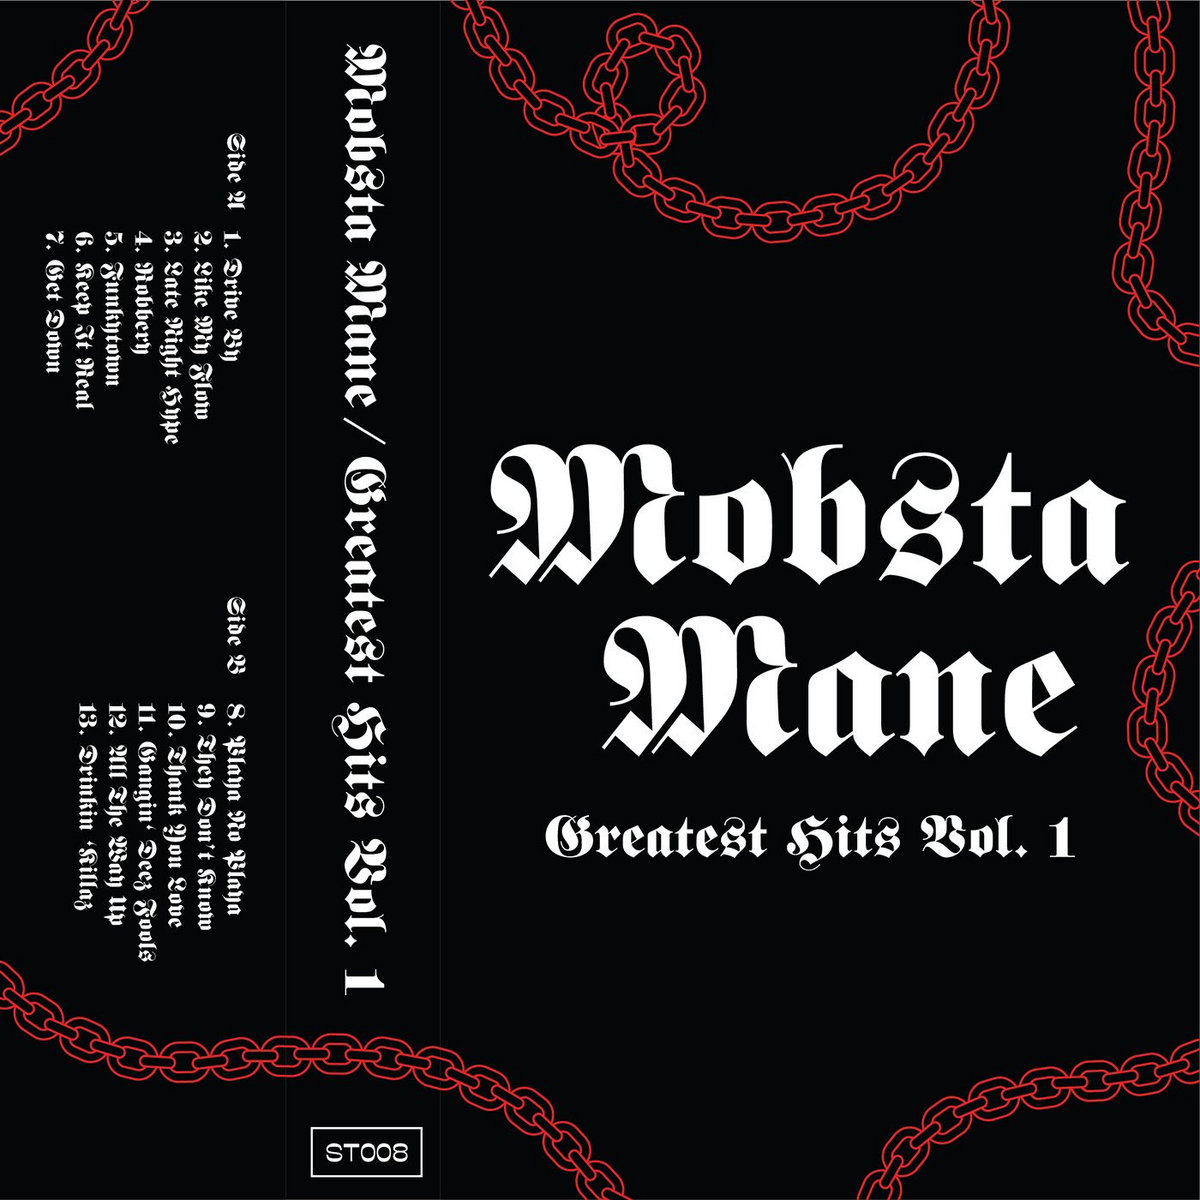 ... black cover cassette case with single-sided, Full color printed J-card.  Includes unlimited streaming of Mobsta Mane - Greatest Hits Vol. 1 via the  free ...